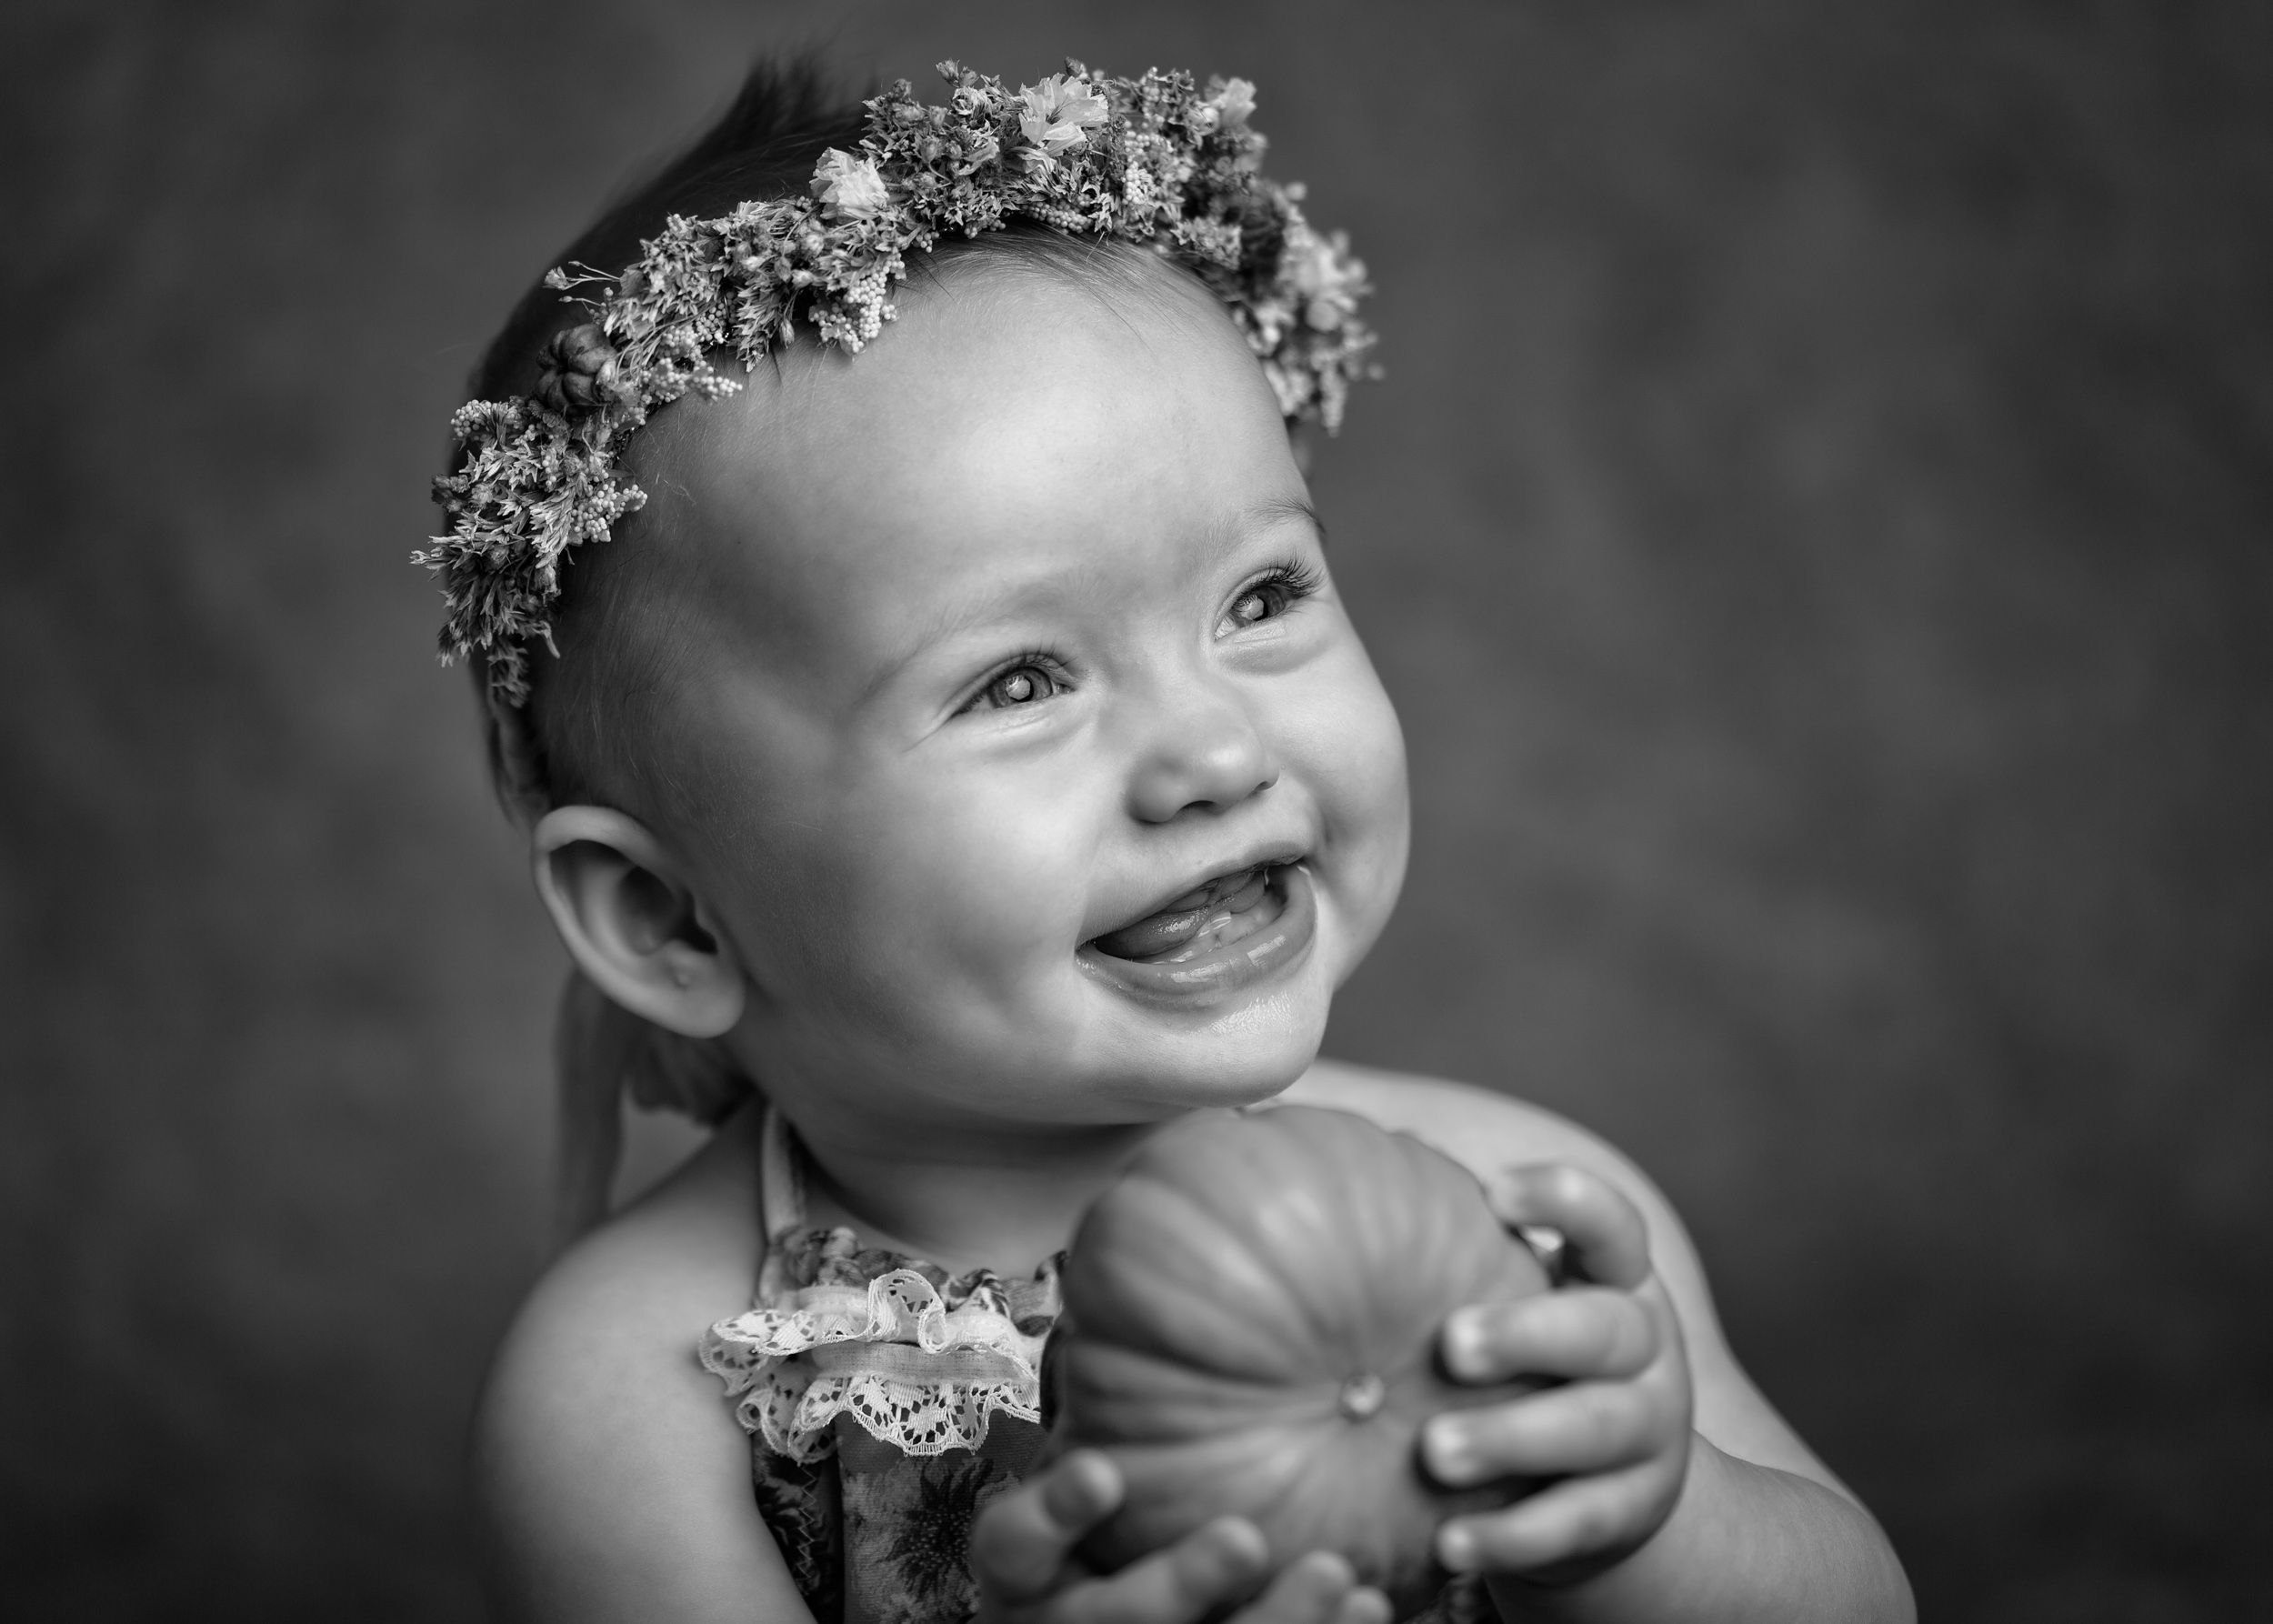 Beautiful smiling girl with a pumpkin taken during a milestone portrait session in Sandbach, Cheshire